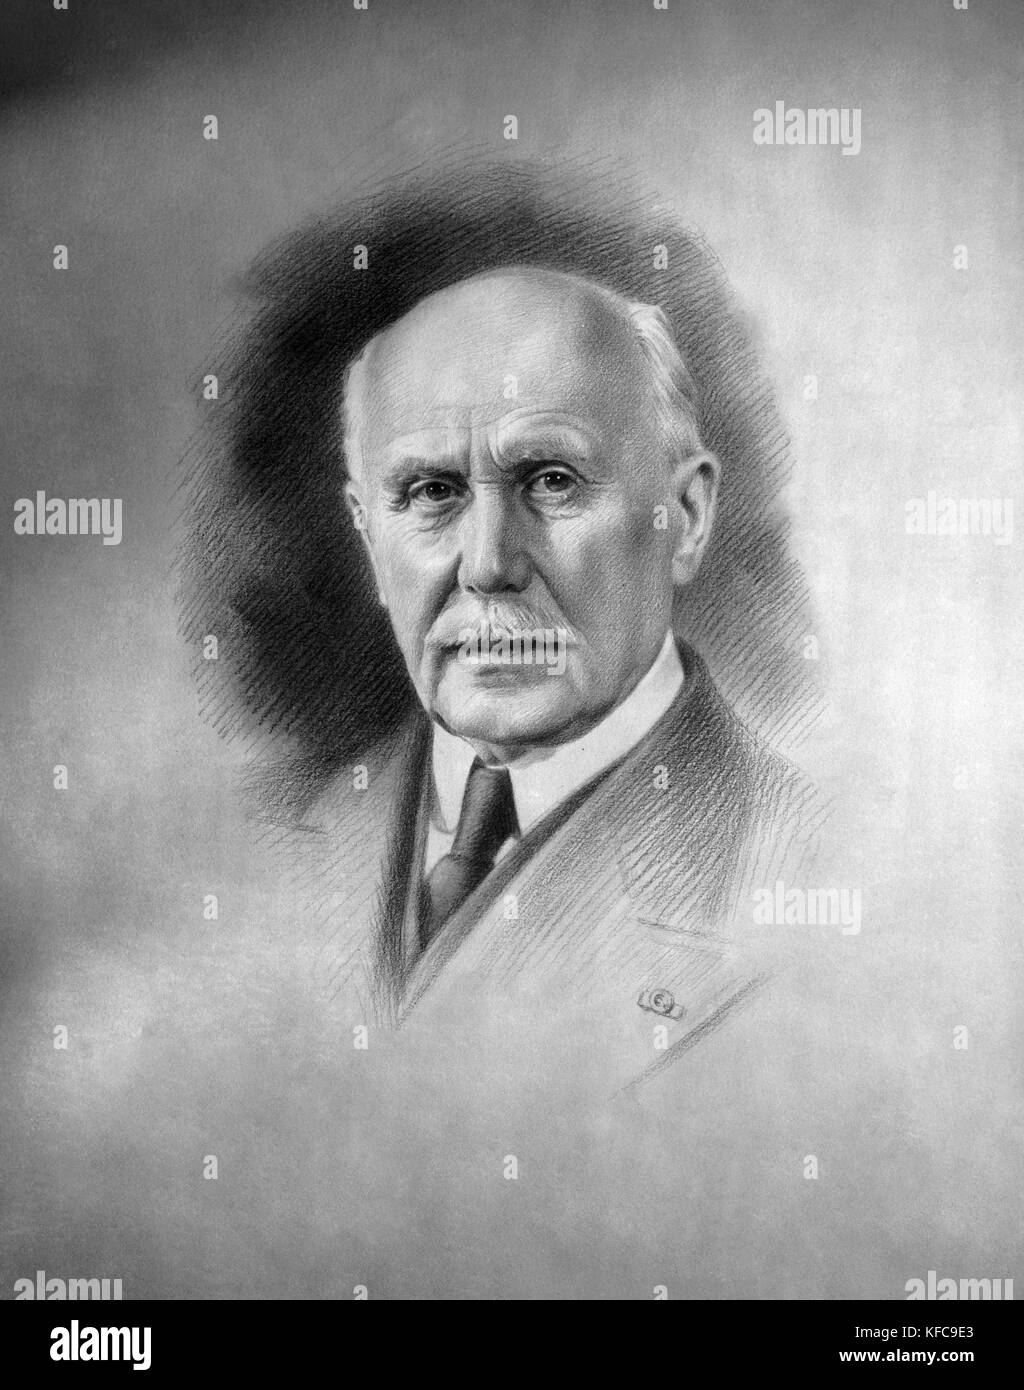 Marshal of France Philippe Pétain, c.1940. Photo Taponier - Stock Image